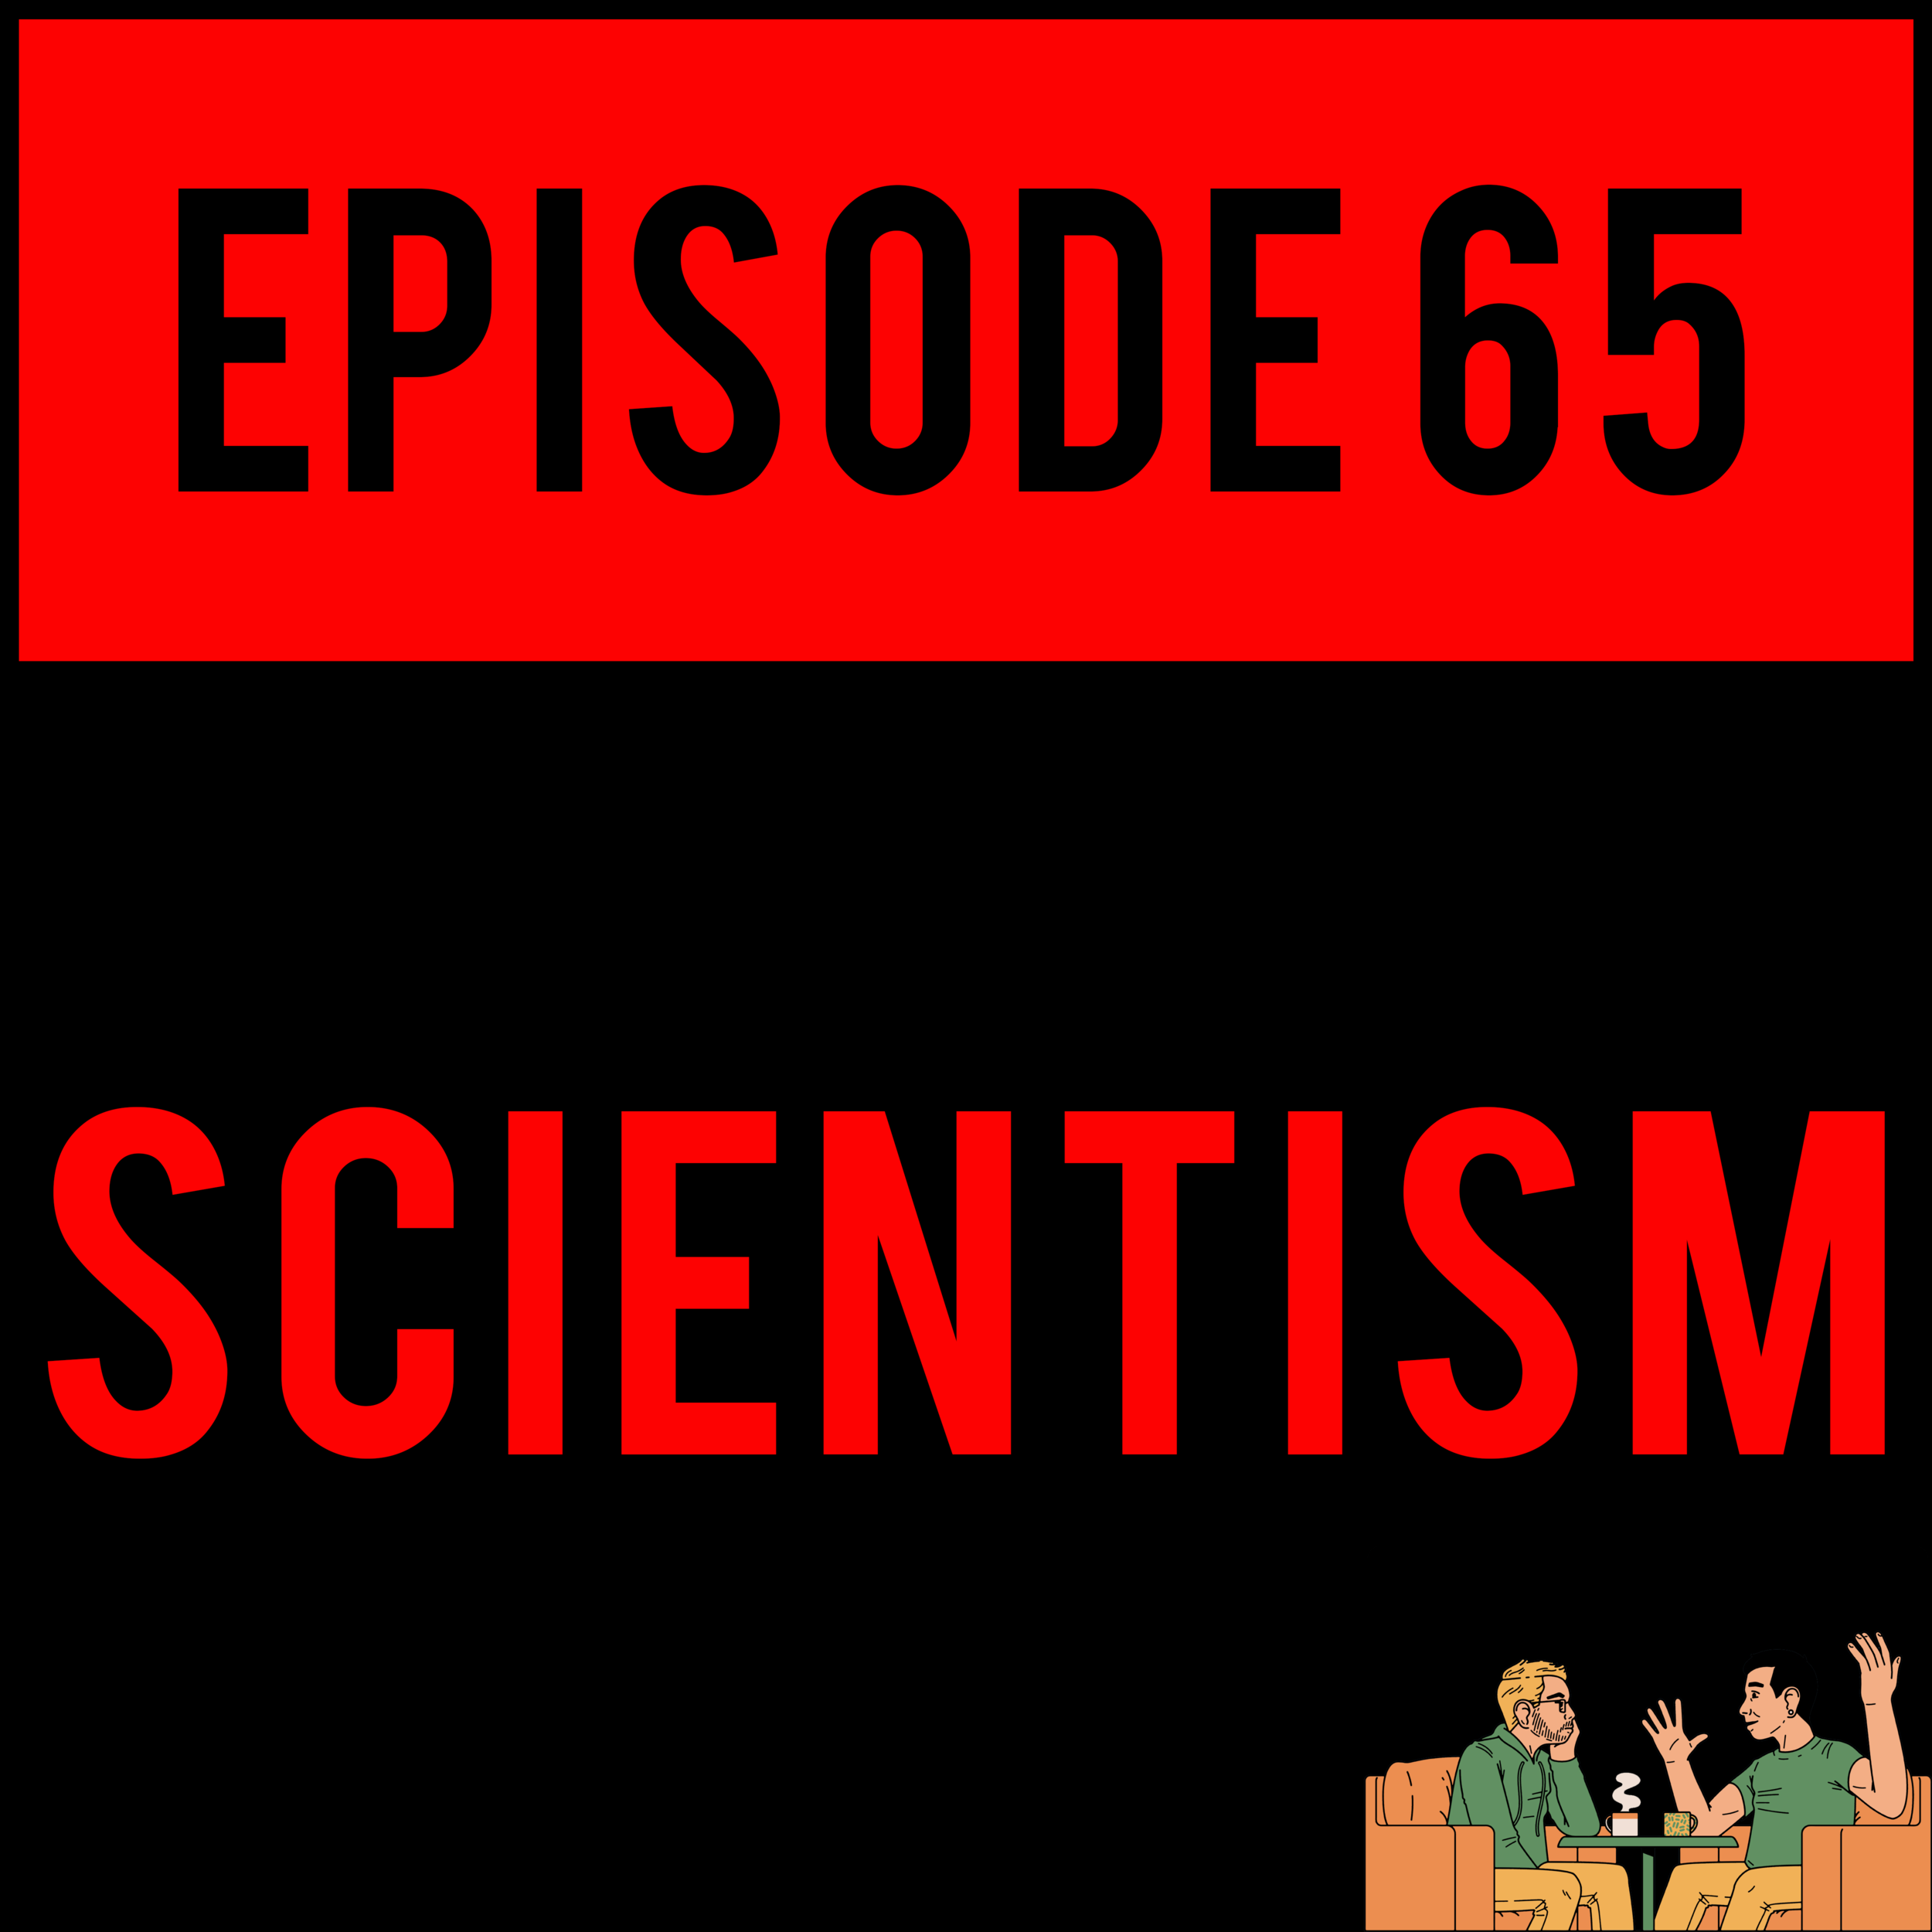 EPISODE 65 - Alex buys everyone Steel Reserve, Danny STARS IN A PORNO and Justyn WINS ALL THE MONIES?! SCIENTISM - EPISODE 65 is Owl City's first album good.